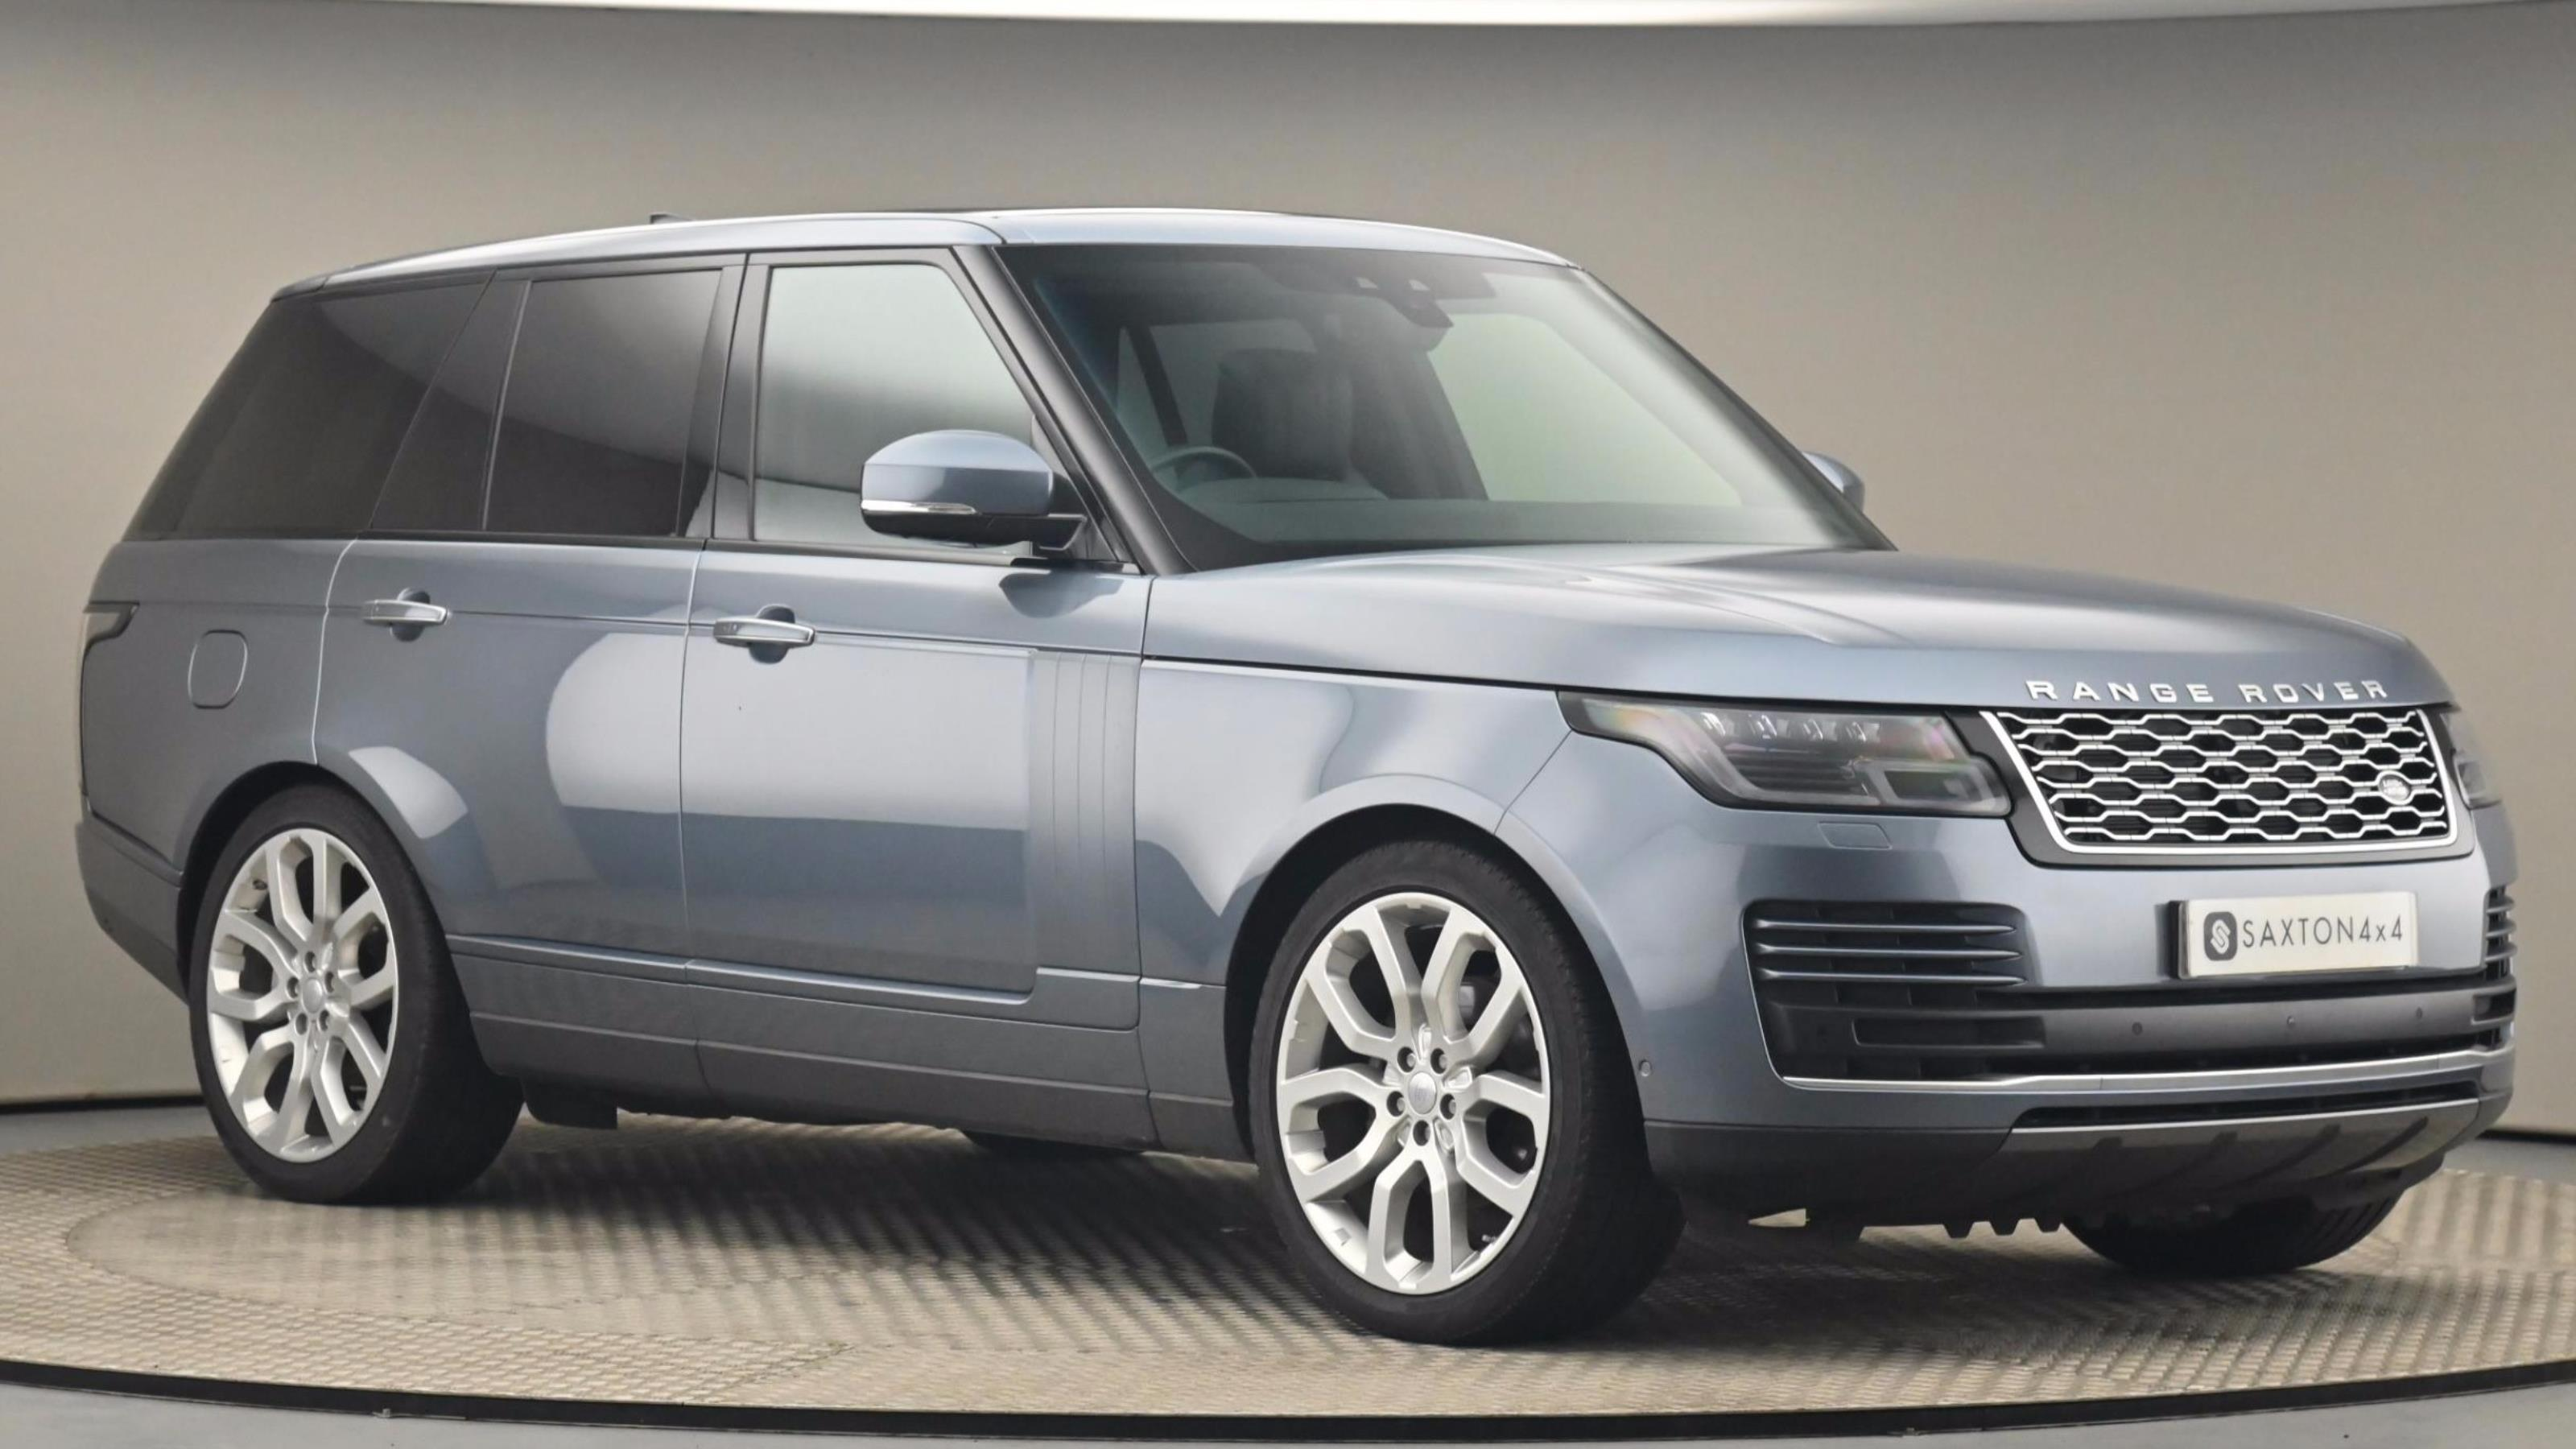 Used 2018 Land Rover RANGE ROVER 3.0 SDV6 Vogue SE 4dr Auto at Saxton4x4